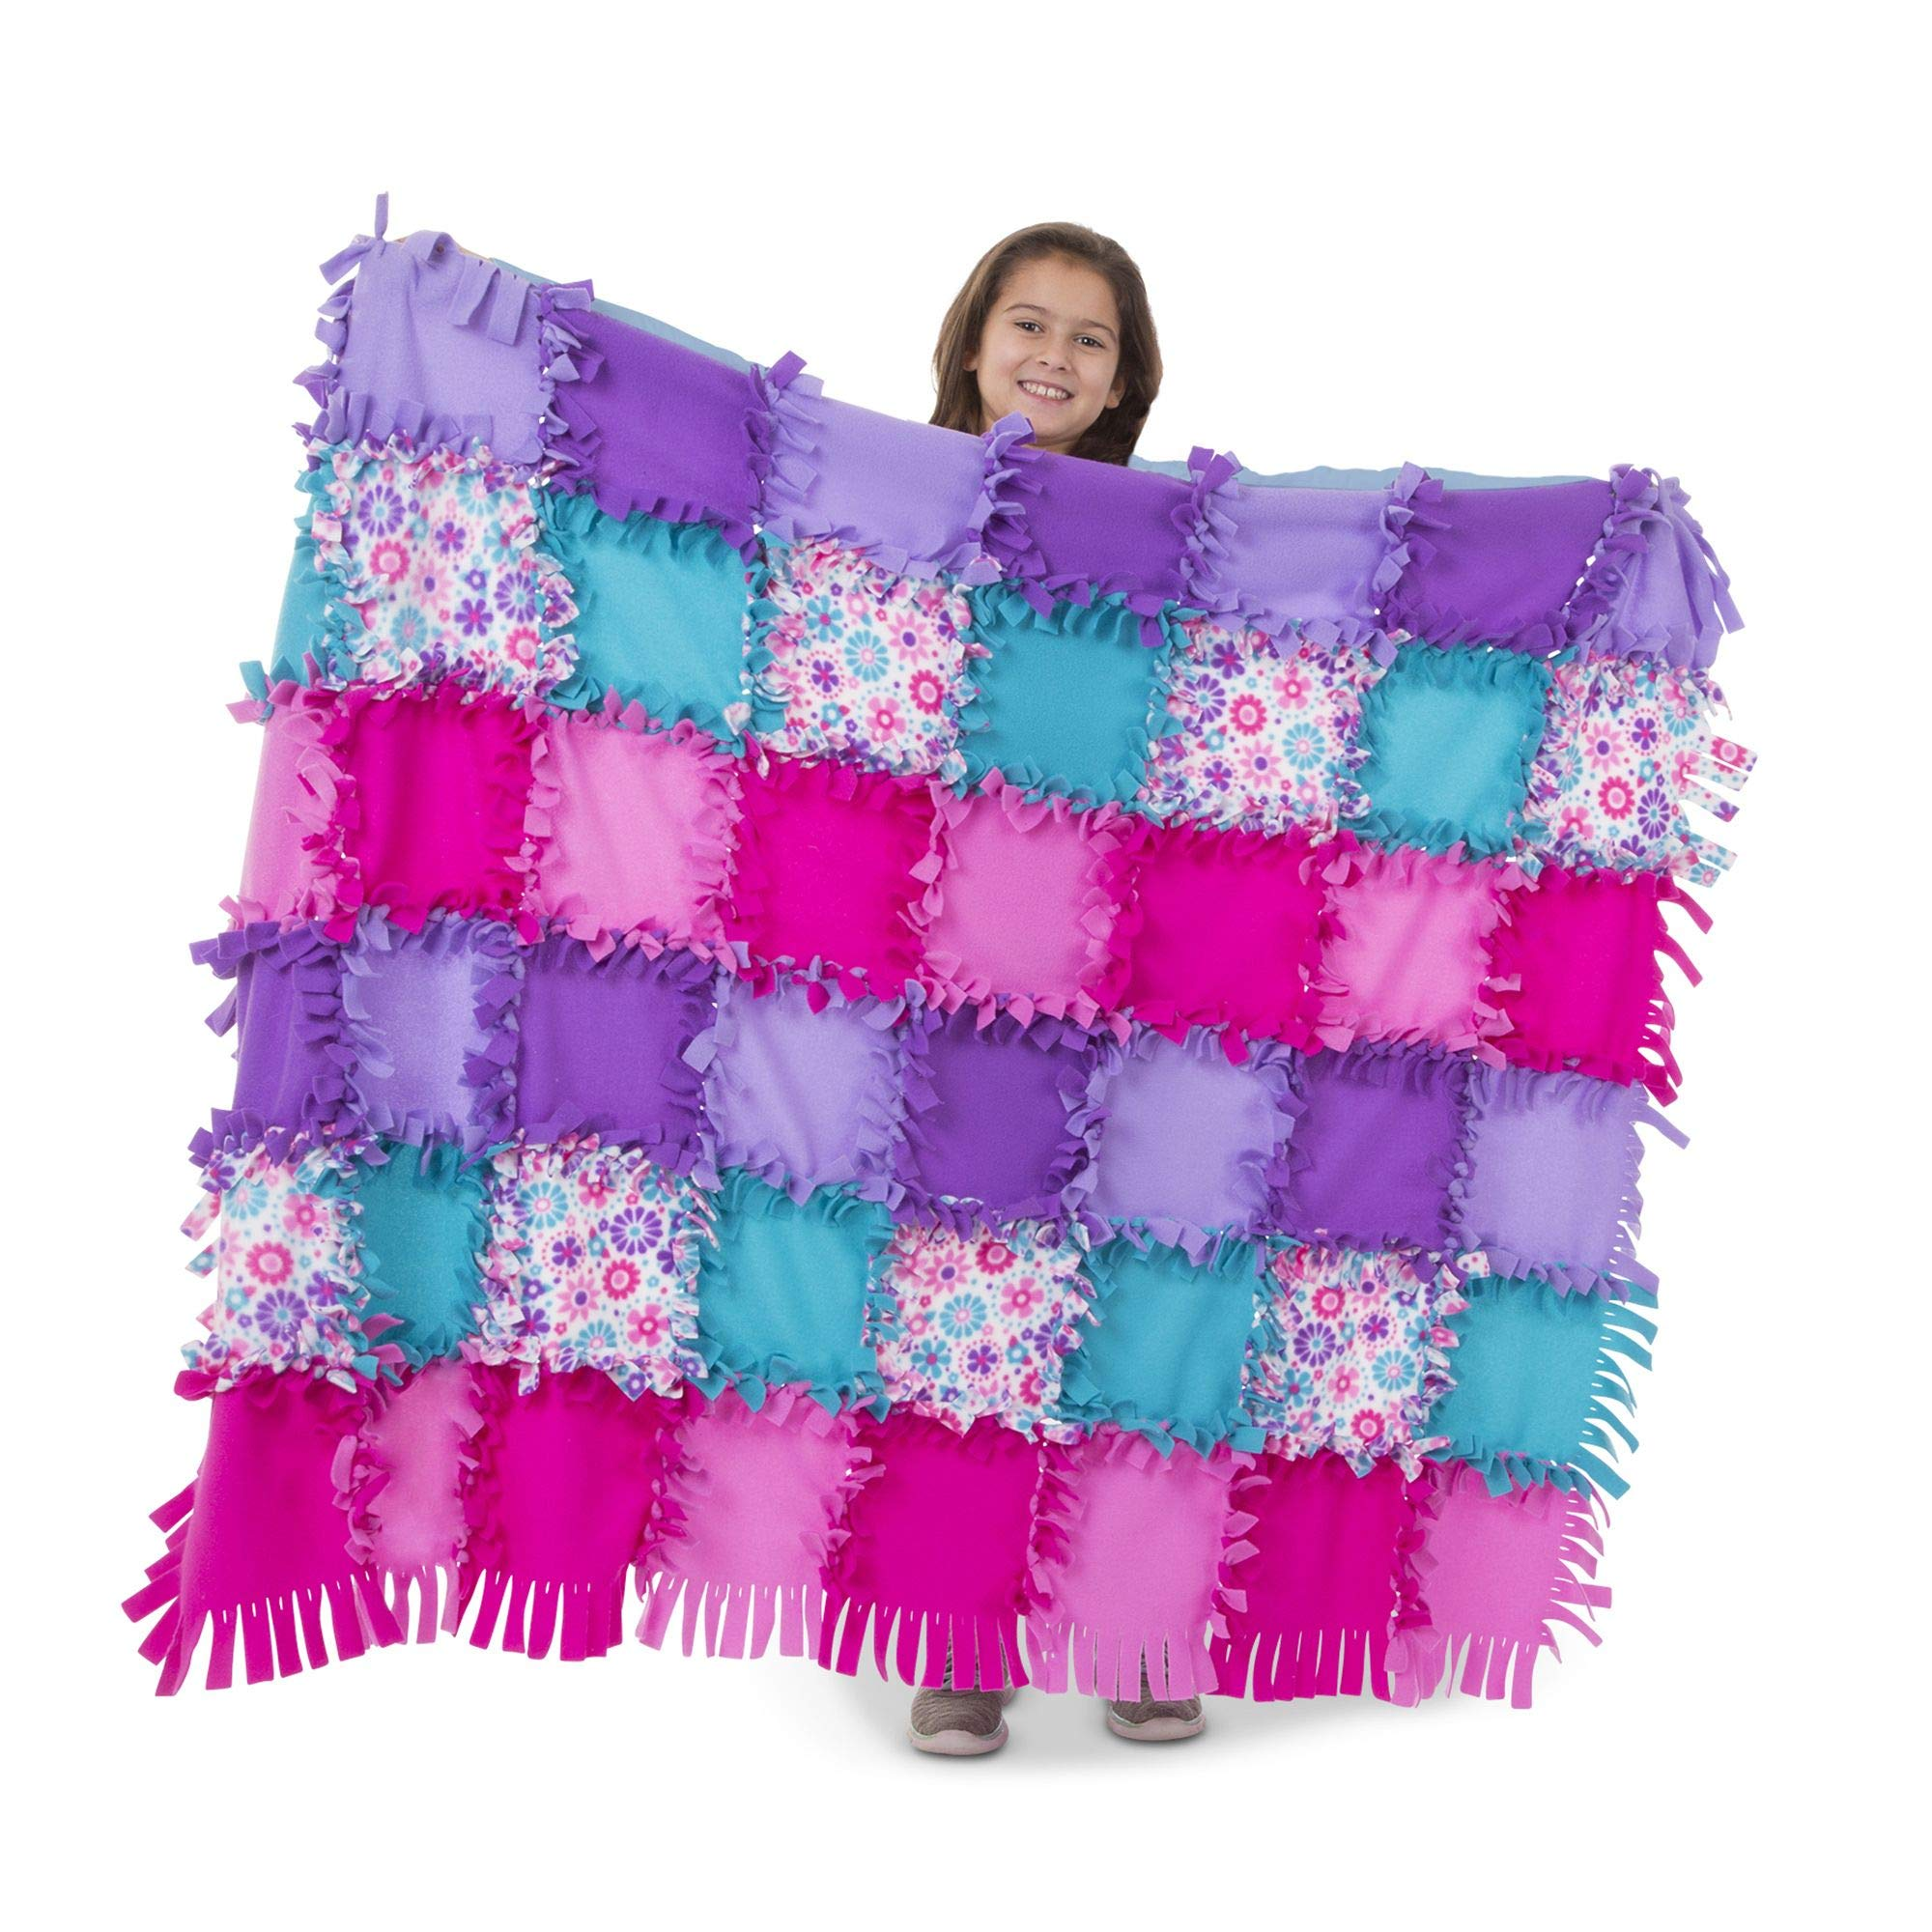 Melissa & Doug Created by Me! Flower Fleece Quilt No-Sew Craft Kit (48 Squares), 4' x 5'